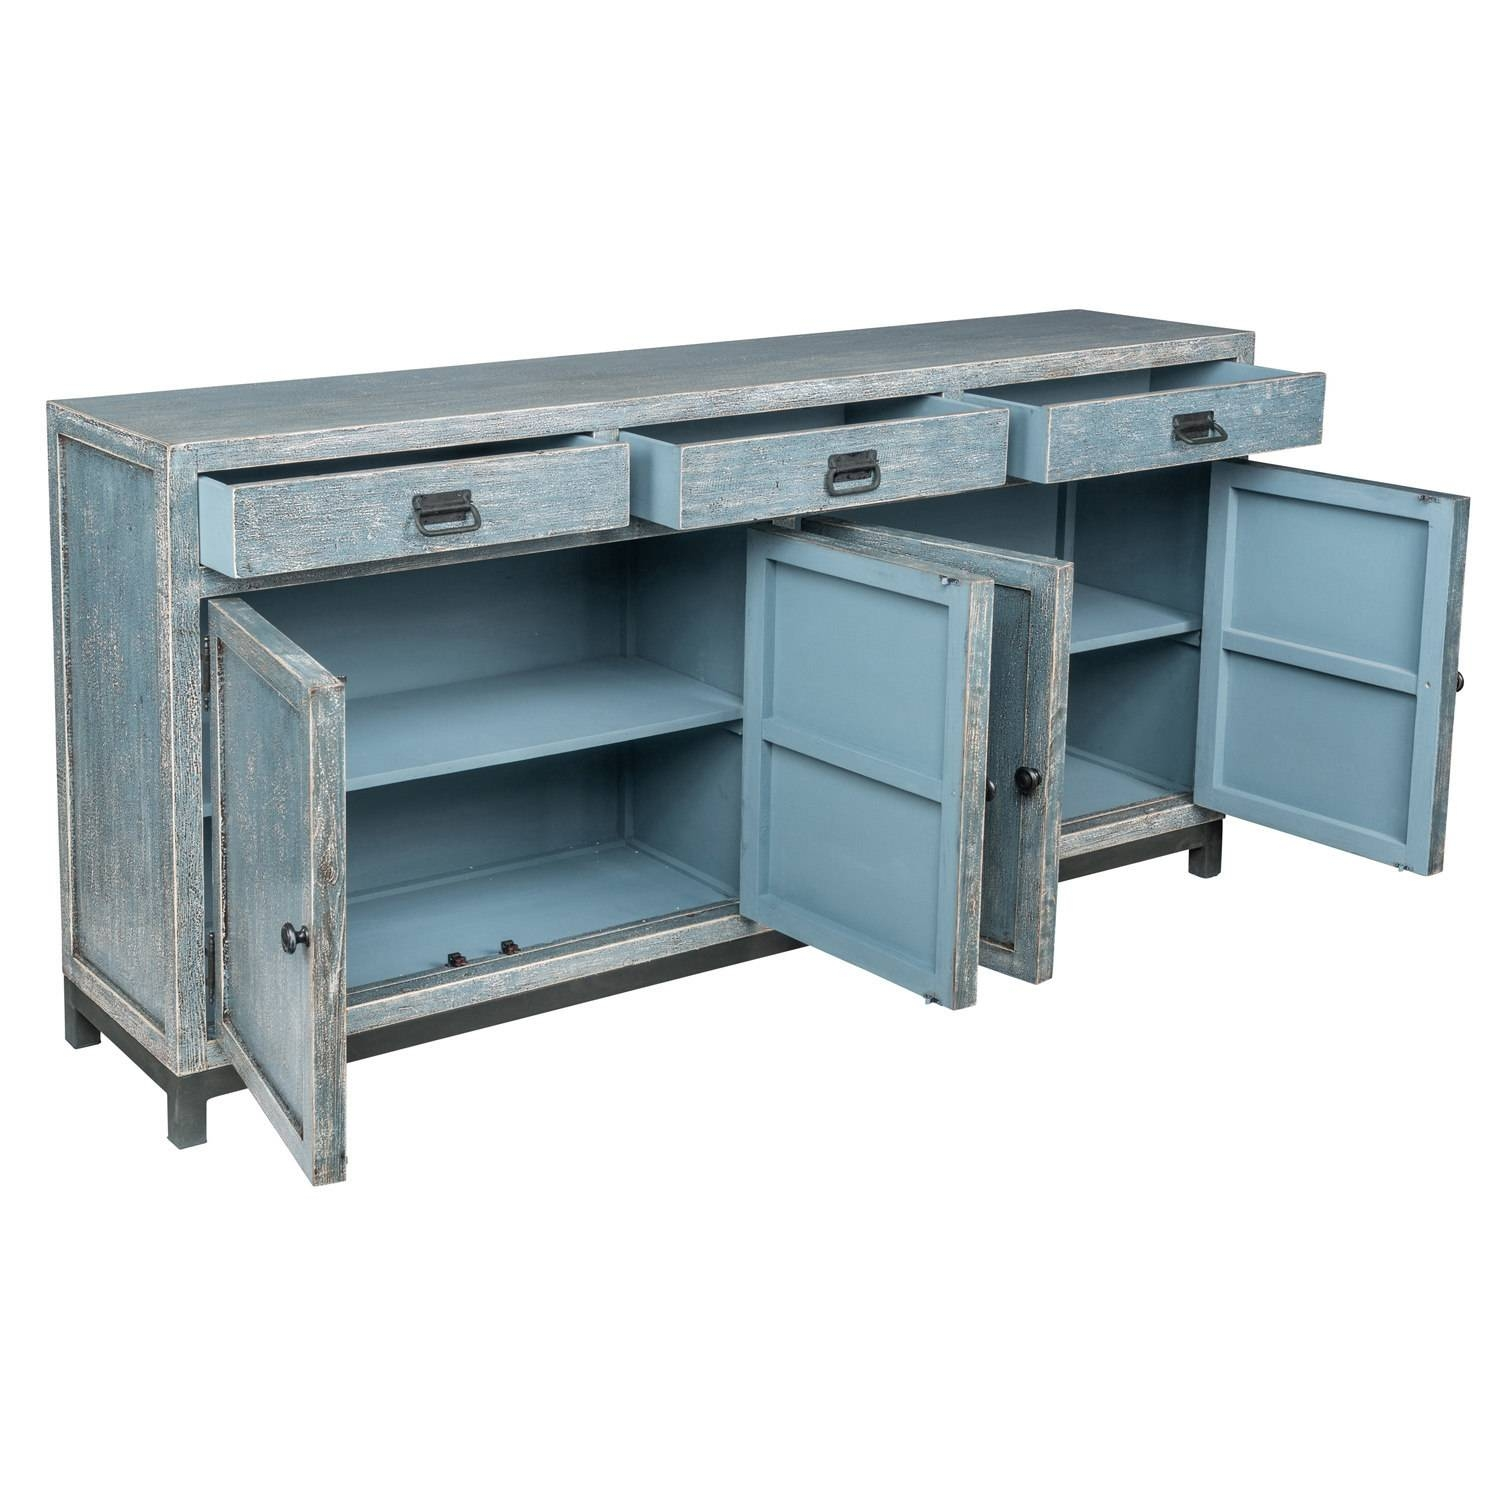 Morton Reclaimed Wood 76-Inch Teal Sideboardkosas Home - Free throughout 14 Inch Deep Sideboards (Image 12 of 15)